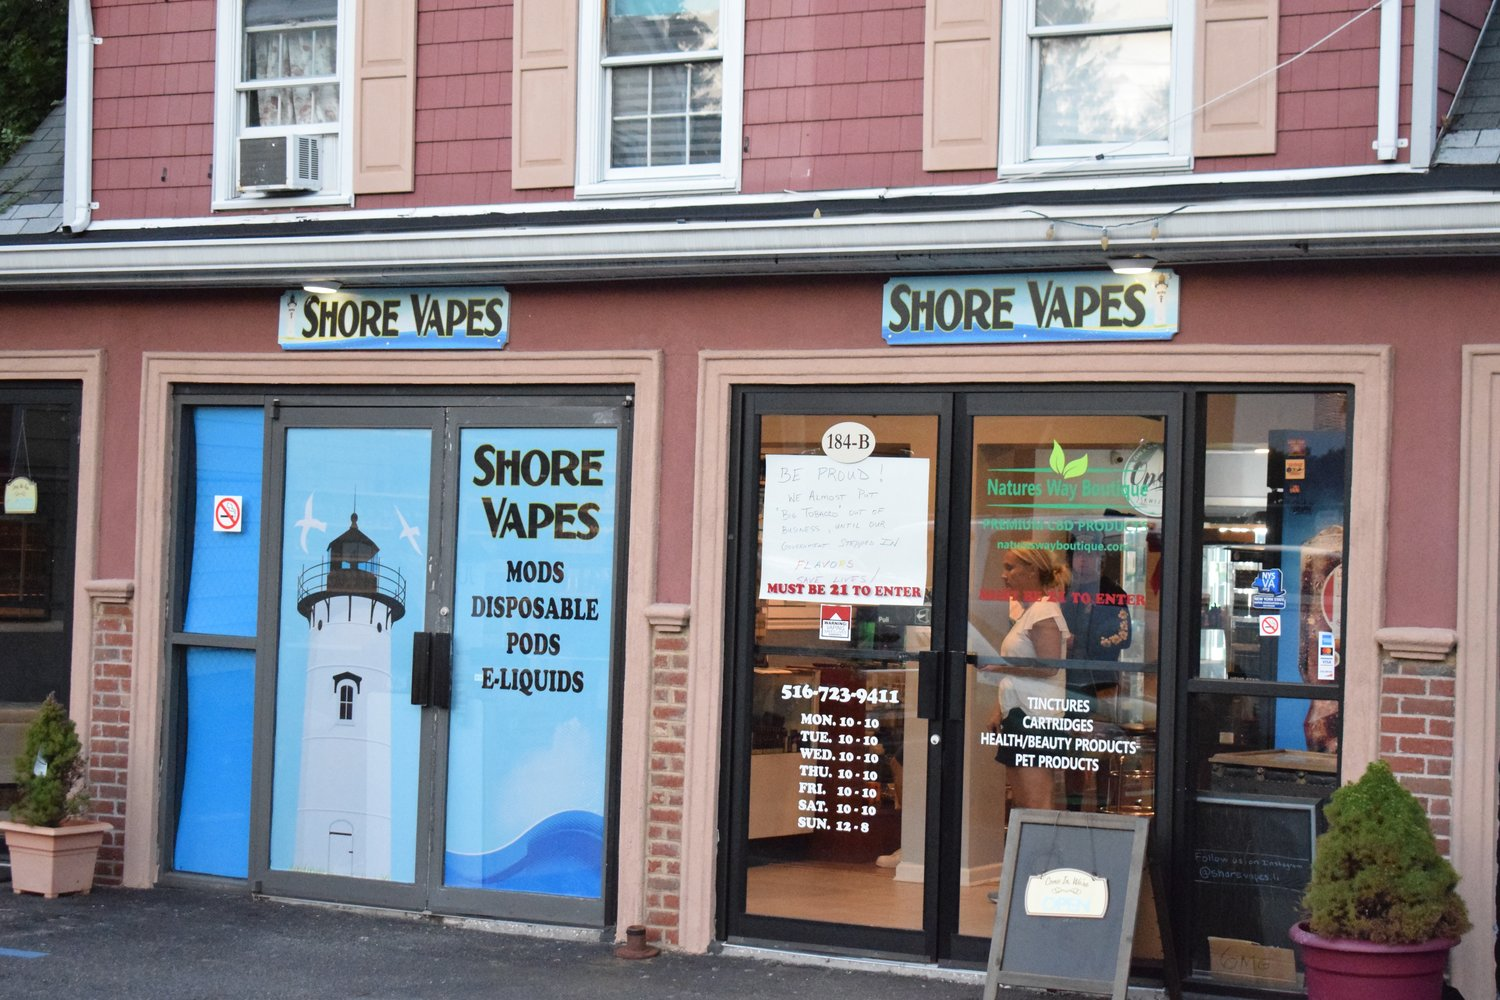 Glen Cove's Shore Vapes could be affected by calls for tightening restrictions on vape and e-cigarette products.